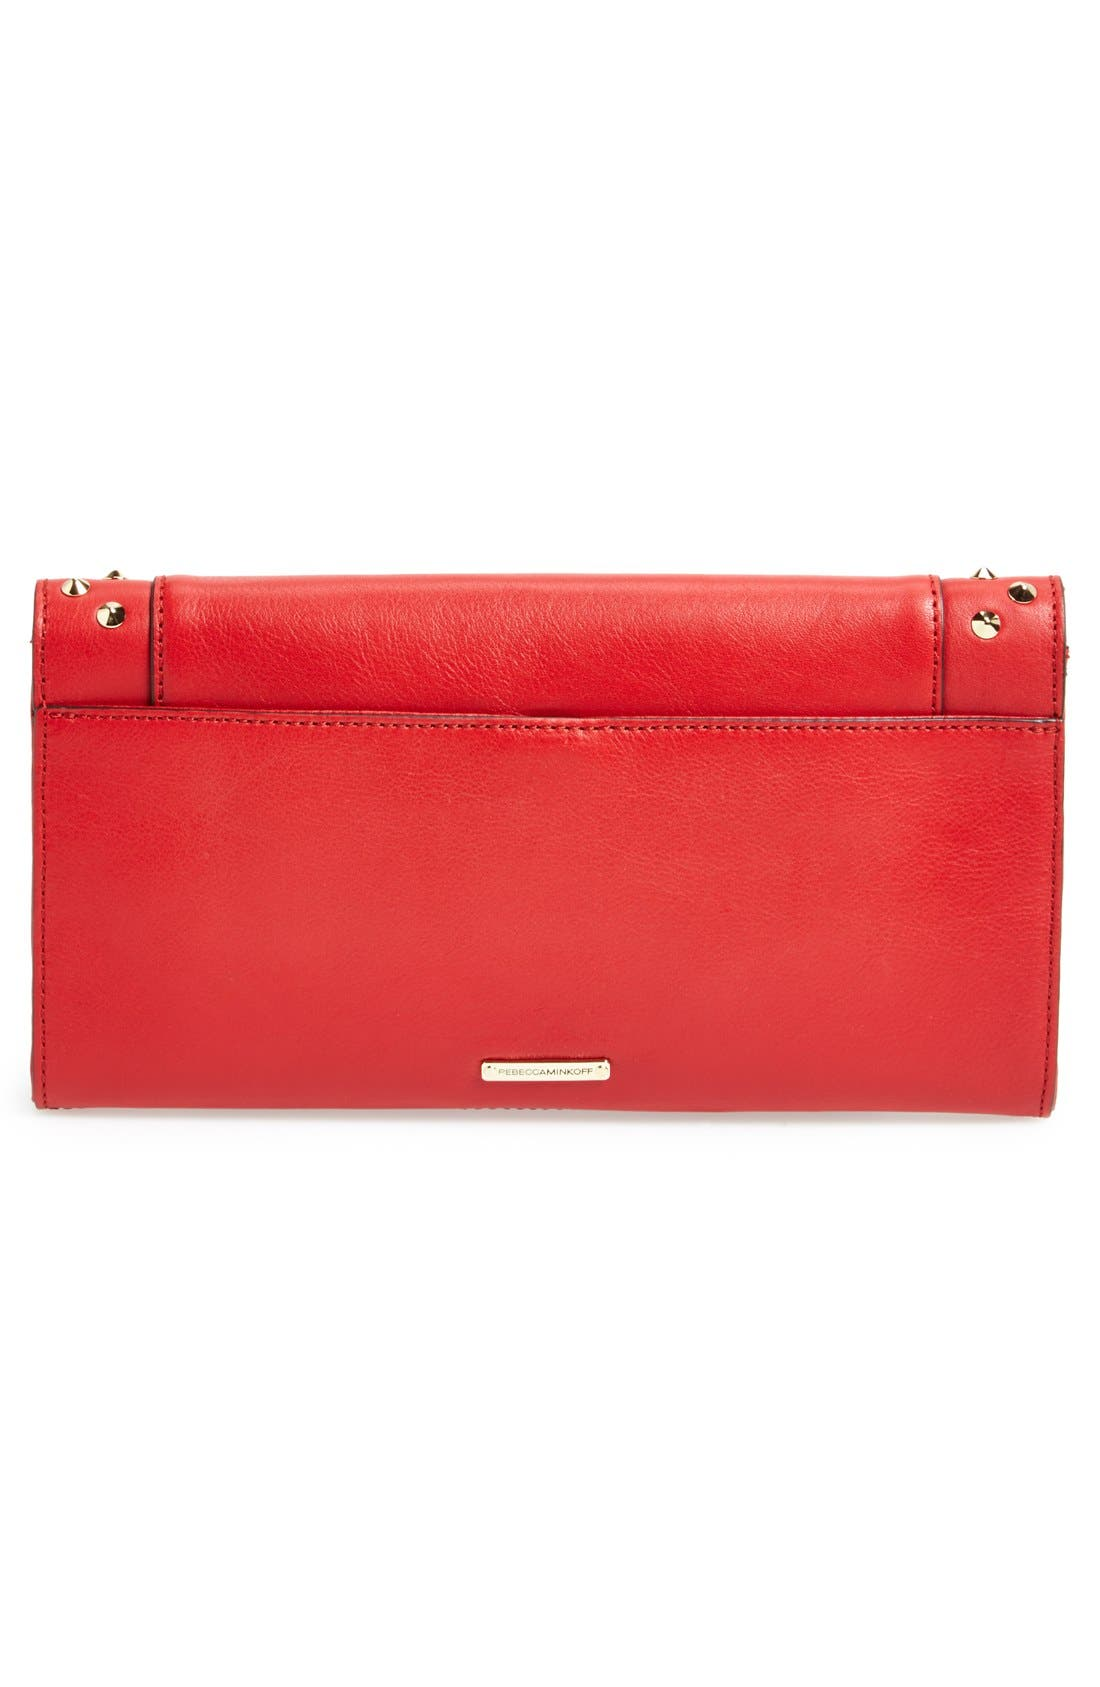 REBECCA MINKOFF,                             'Amorous' Clutch with Studs,                             Alternate thumbnail 4, color,                             600